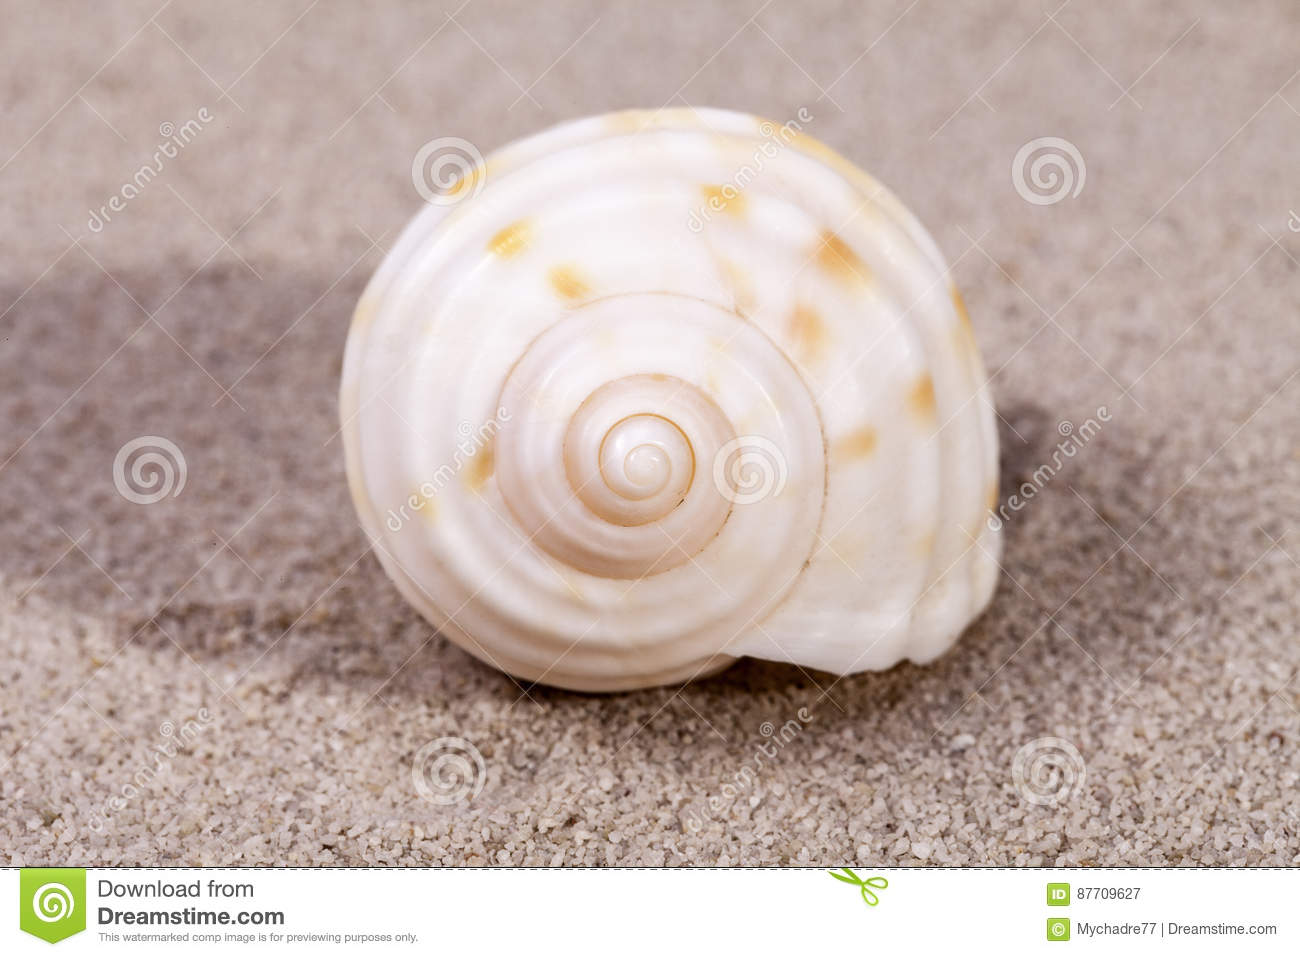 Coquille simple de mer d escargot marin se trouvant sur le sable